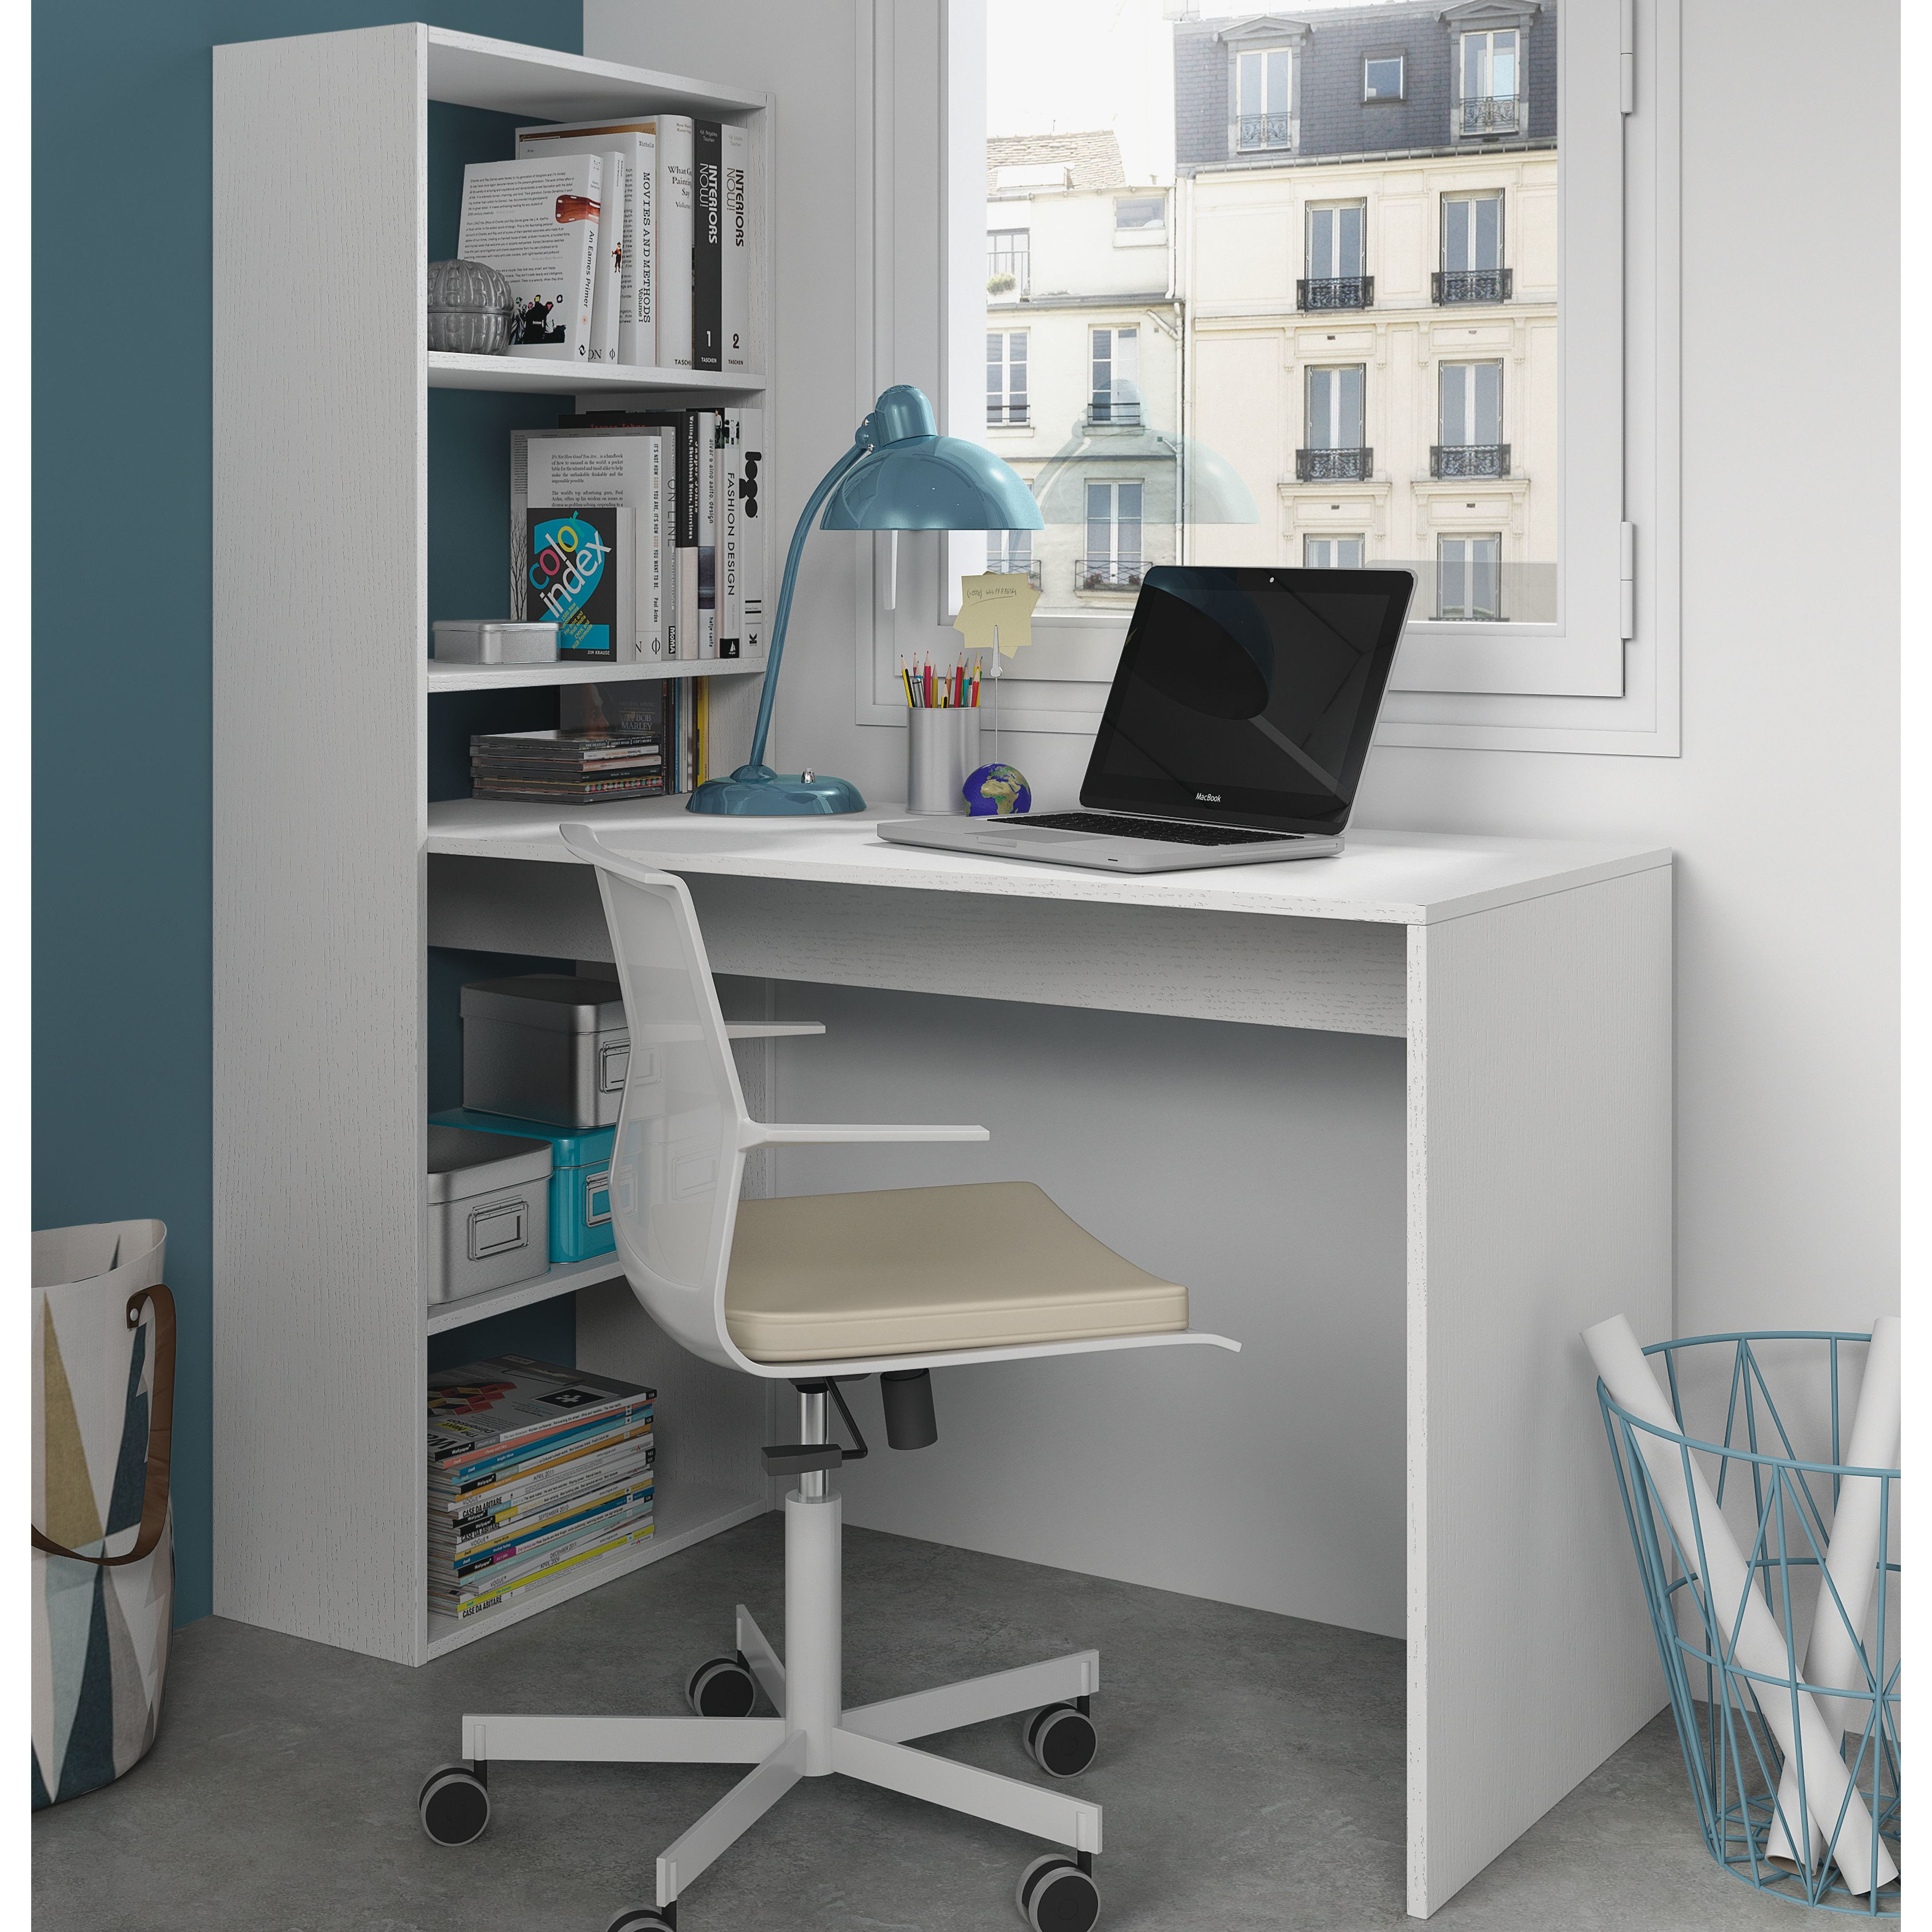 Silke Desk Bookshelf desk, Furniture, Study table designs